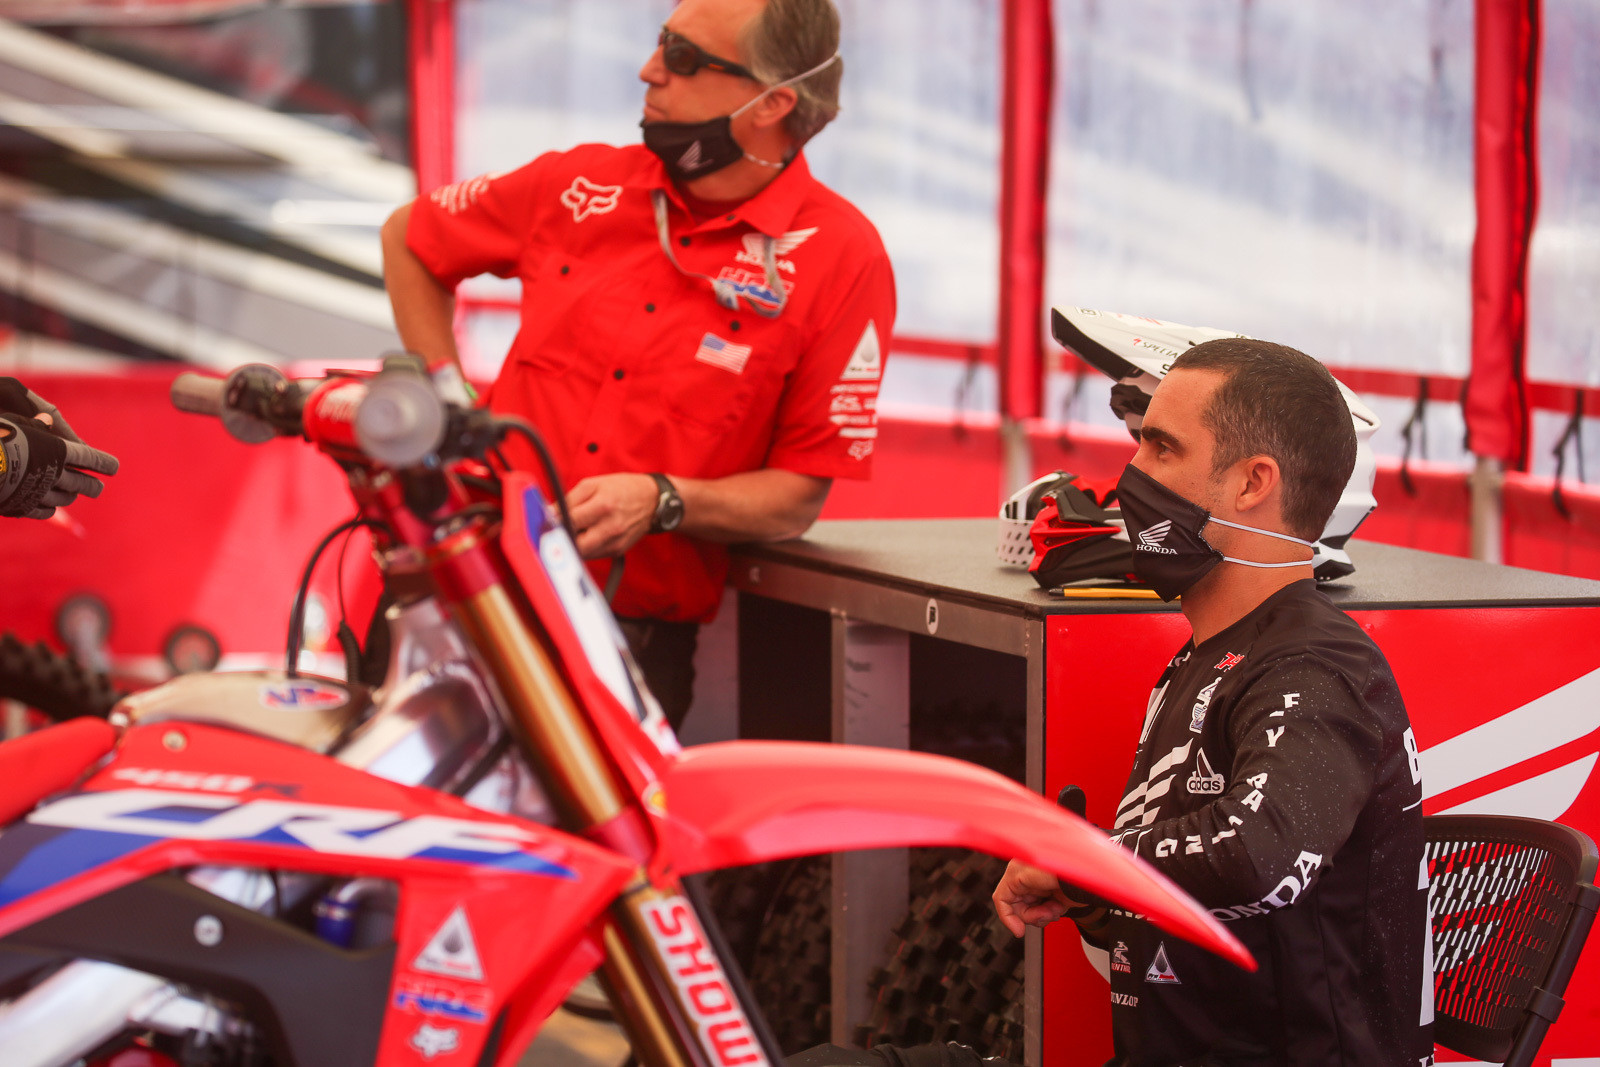 Justin Brayton and Shane Drew hanging out before the start of Sunday's action. Proper social distancing engaged.